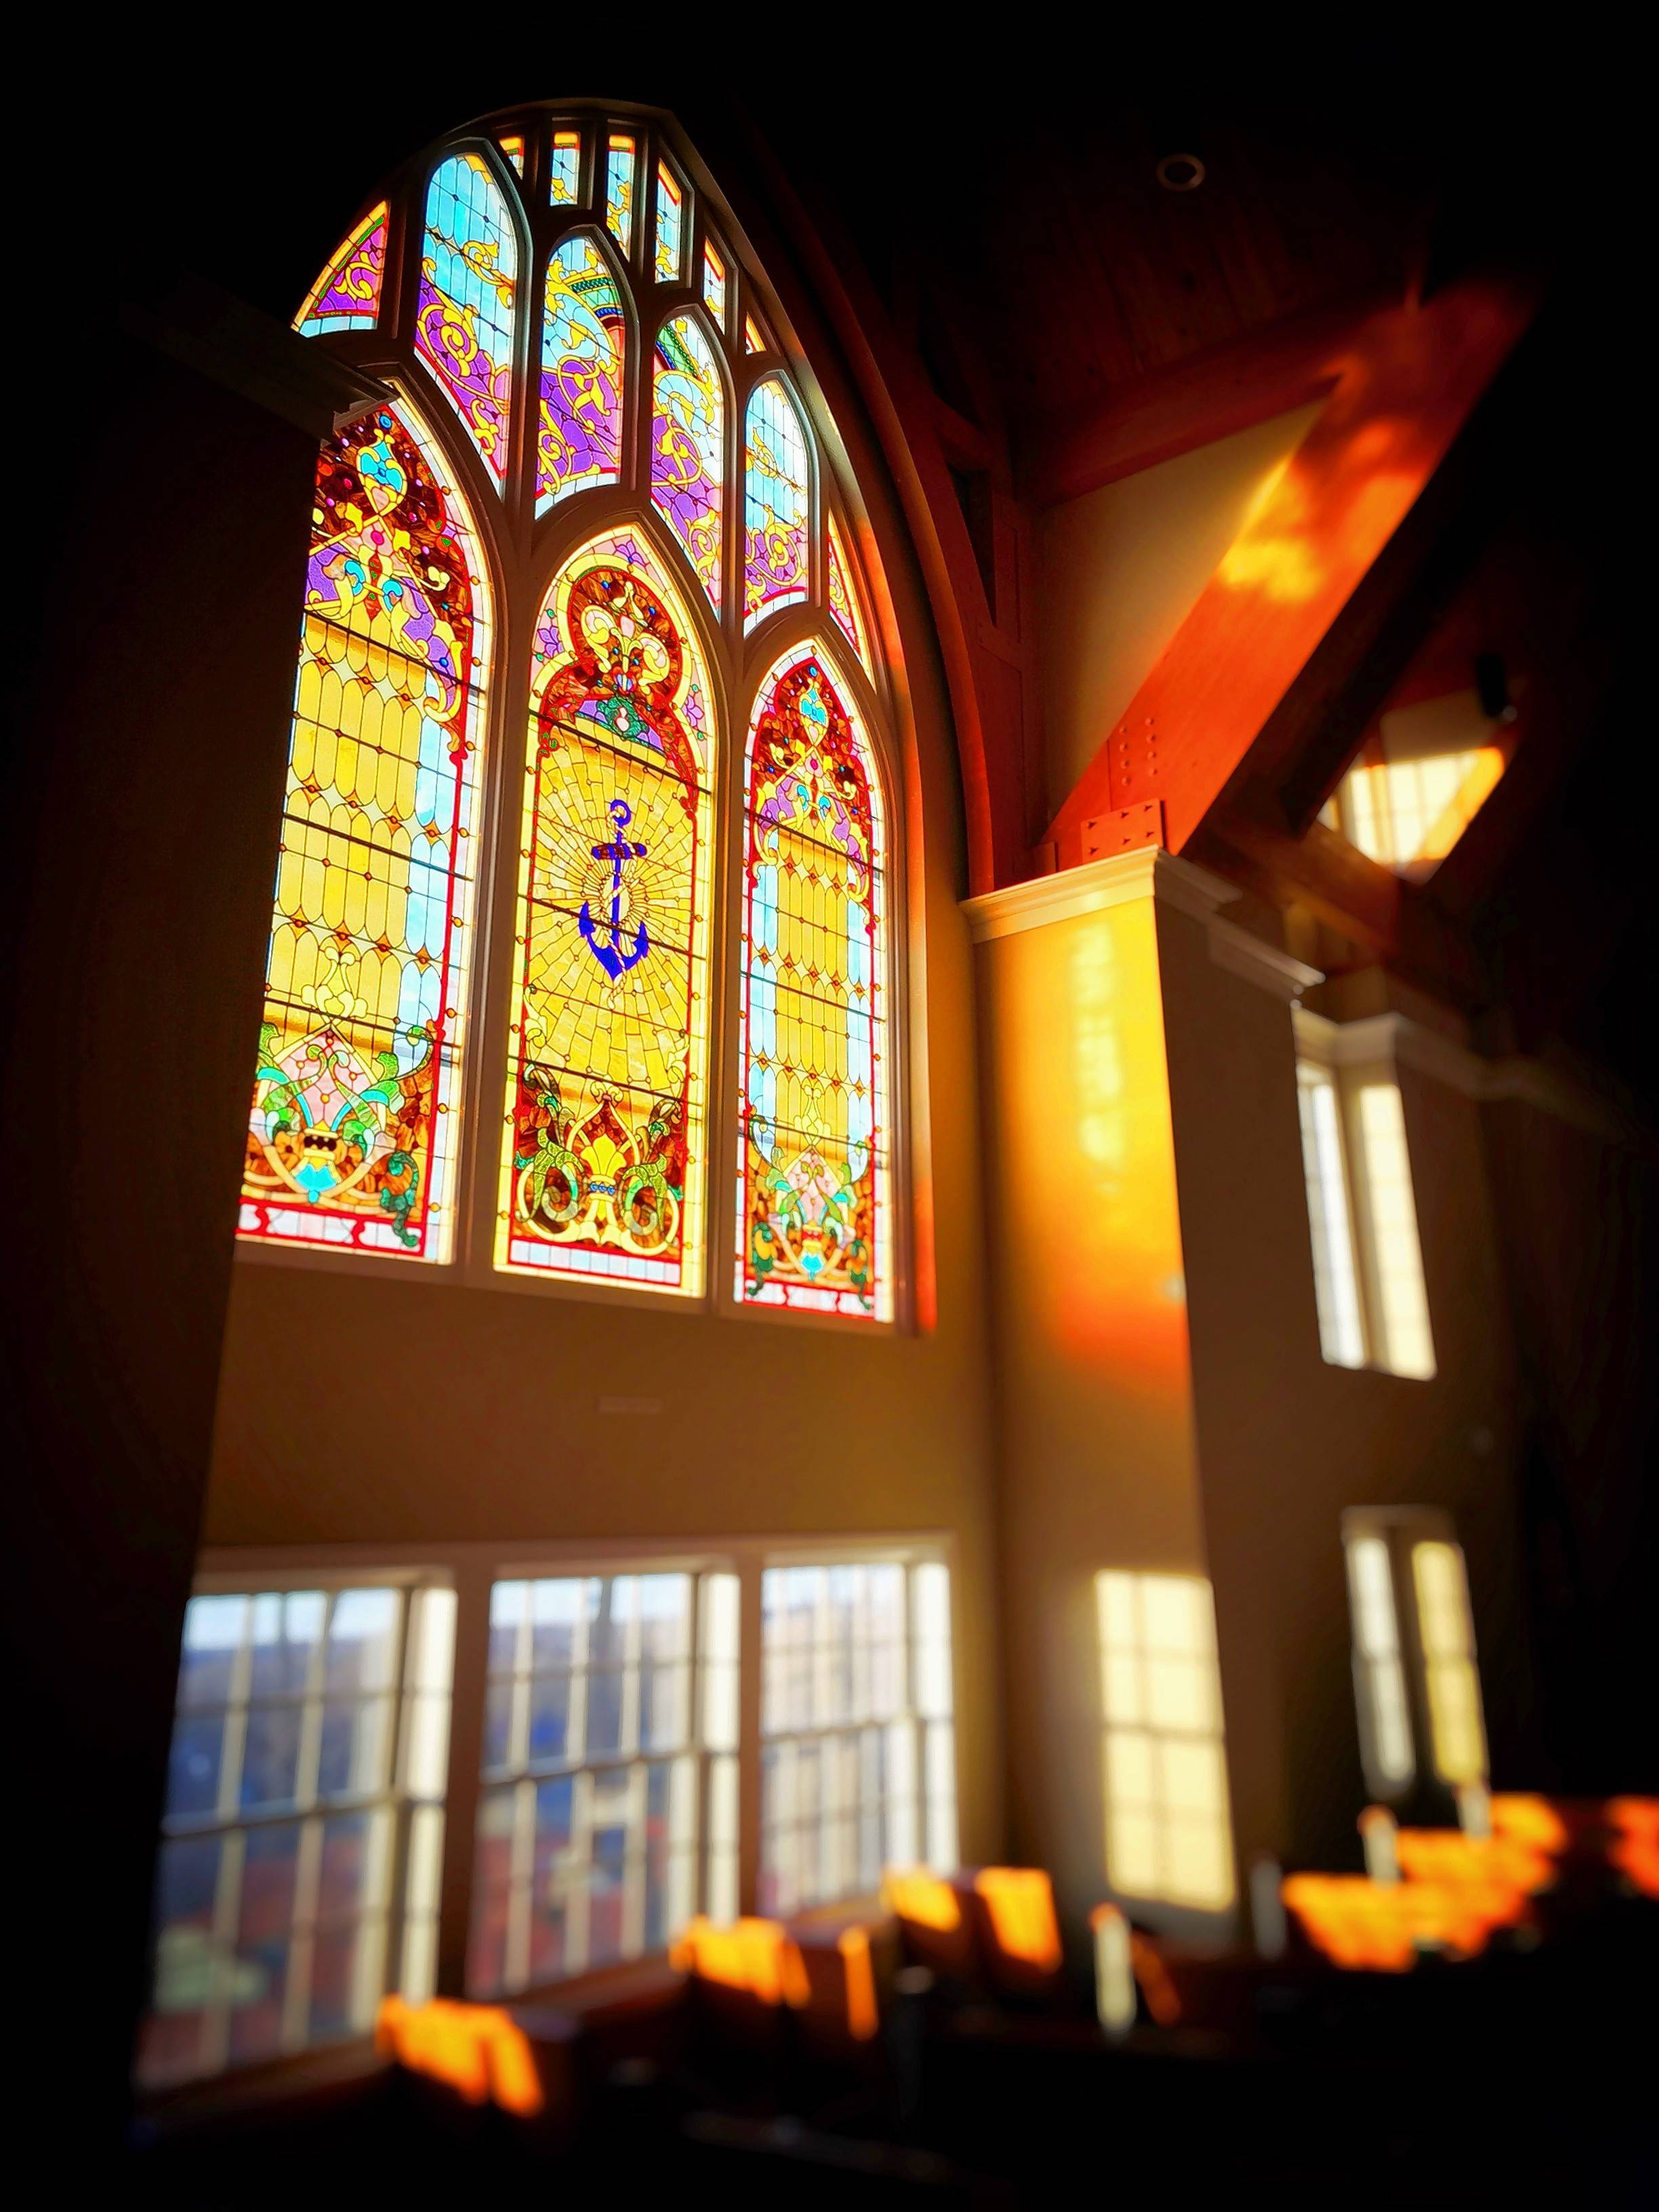 The stained glass windows in the sanctuary of the First Congregational Church of Dundee were moved to the new location on Route 31 from its former building at Fifth and Main streets.